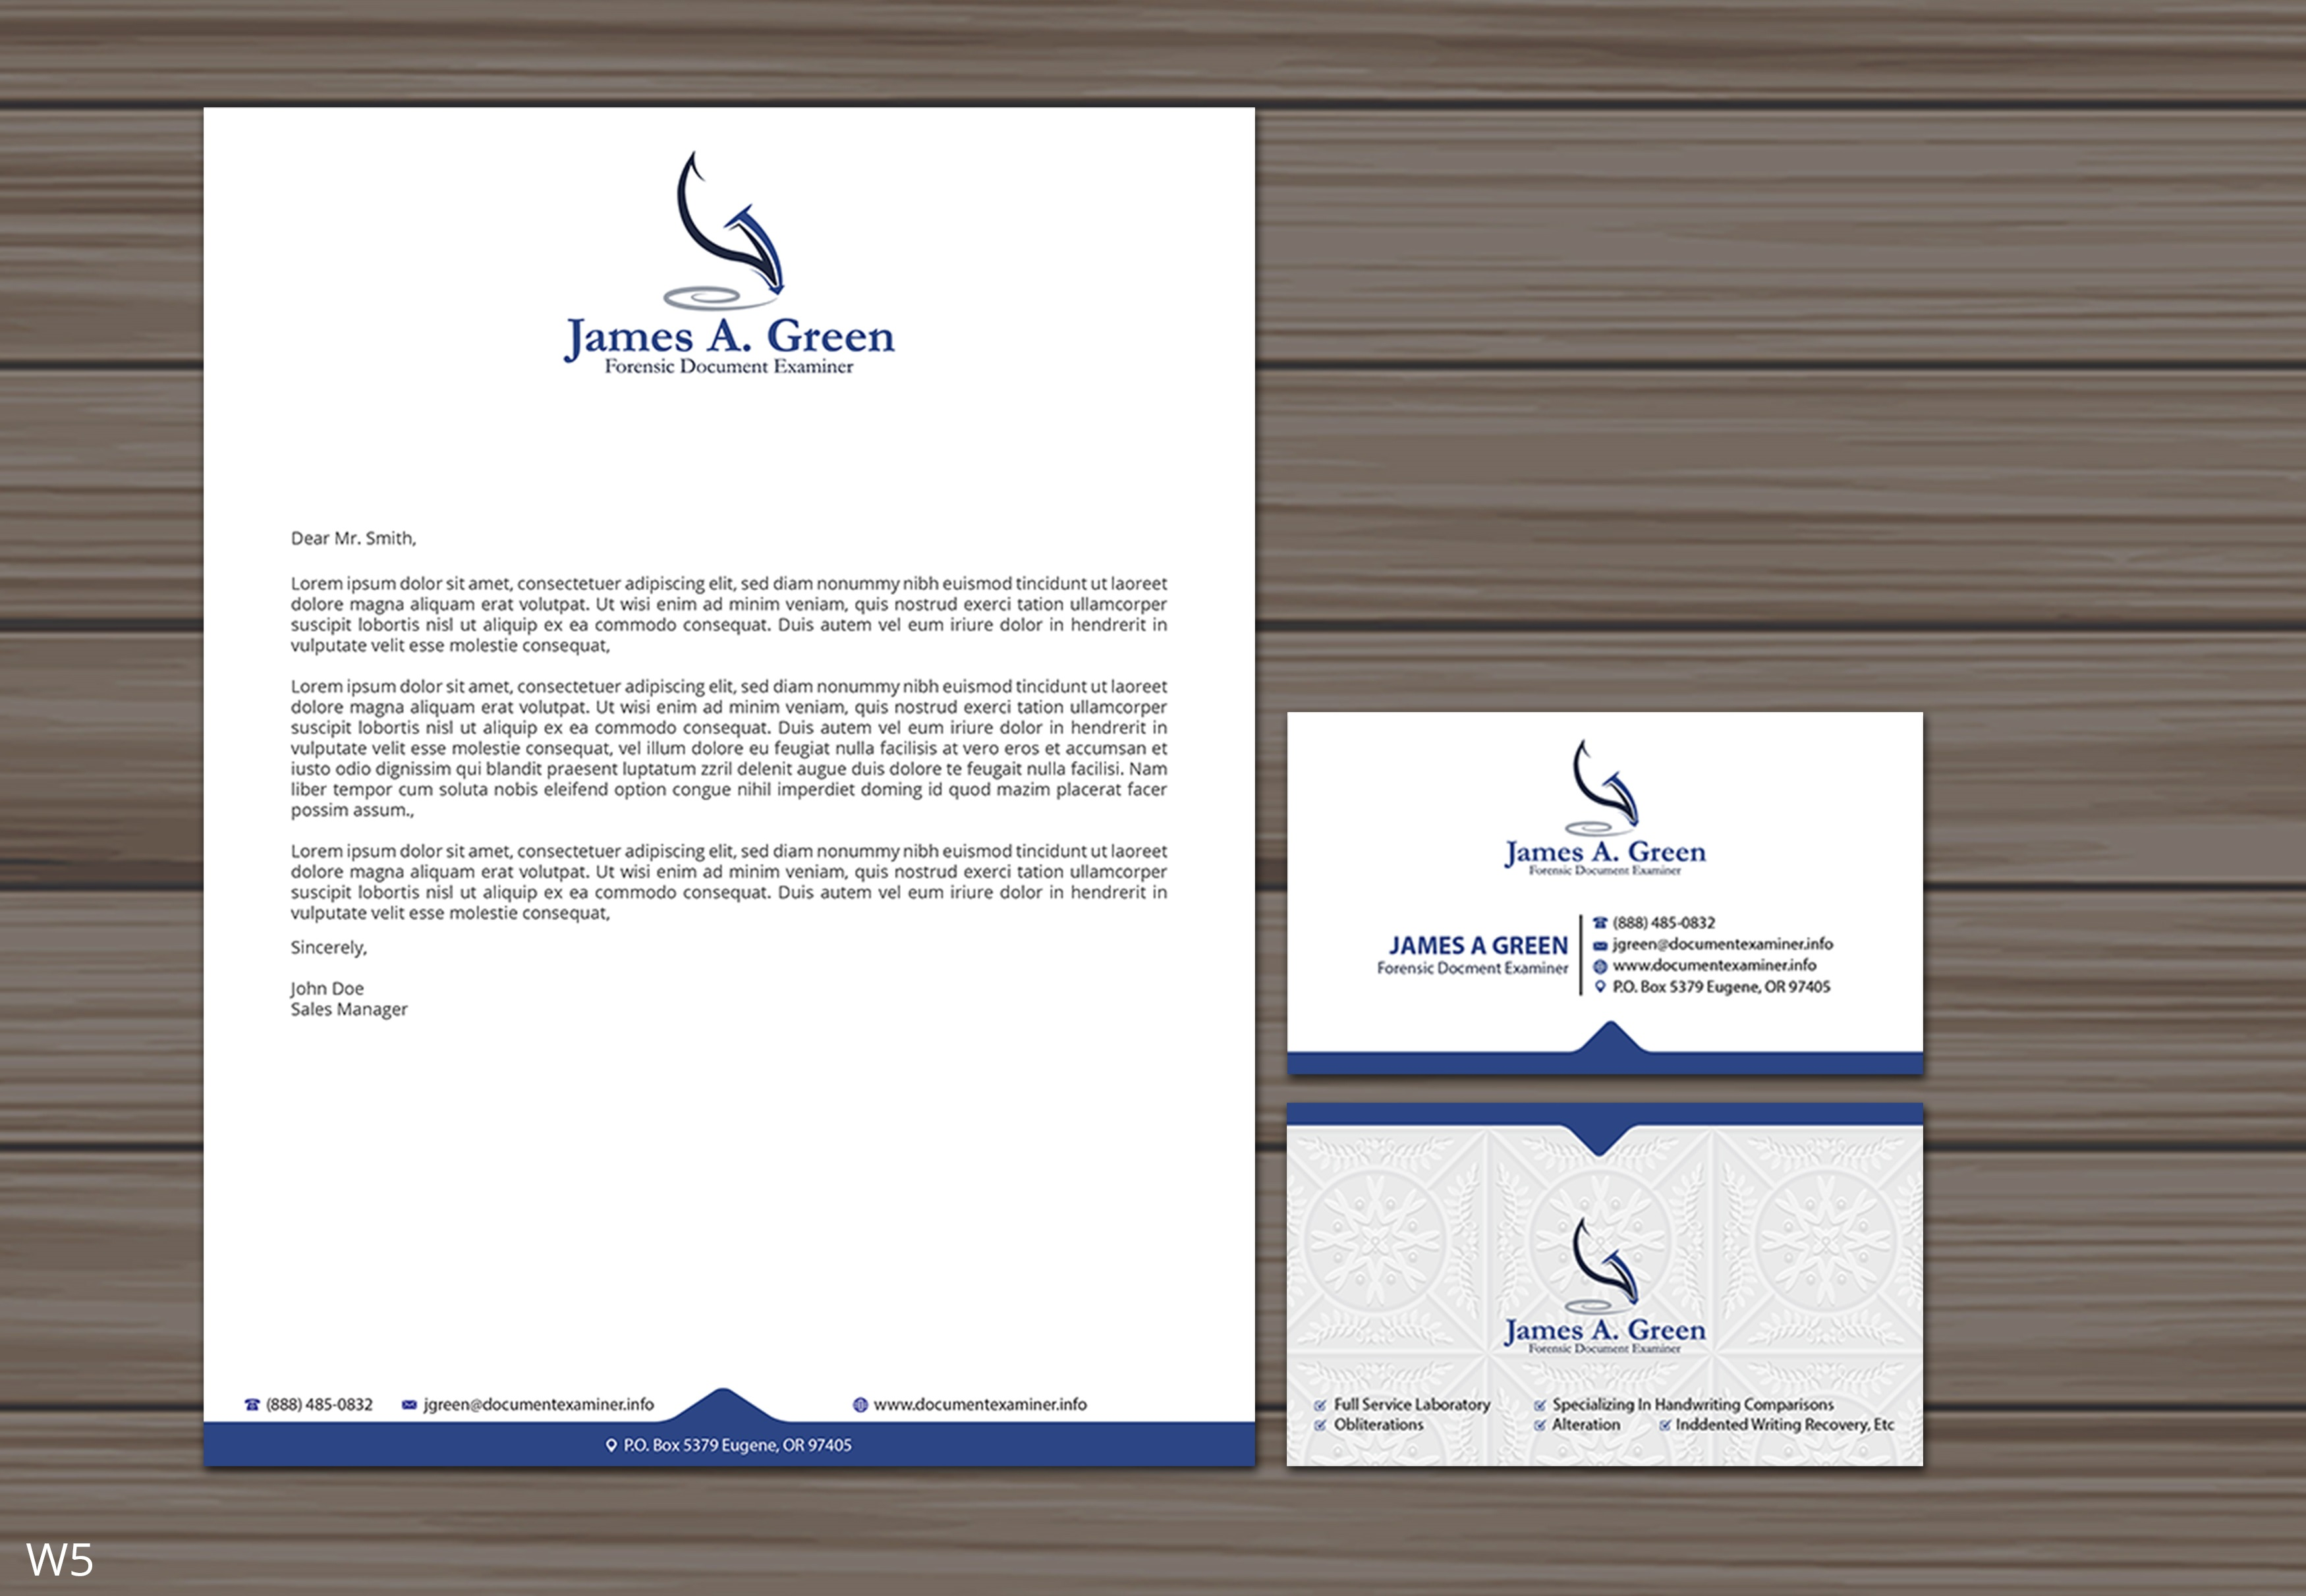 Professional Serious Stationery Design For Forensic Document Examiner By Designanddevelopment Design 22109434